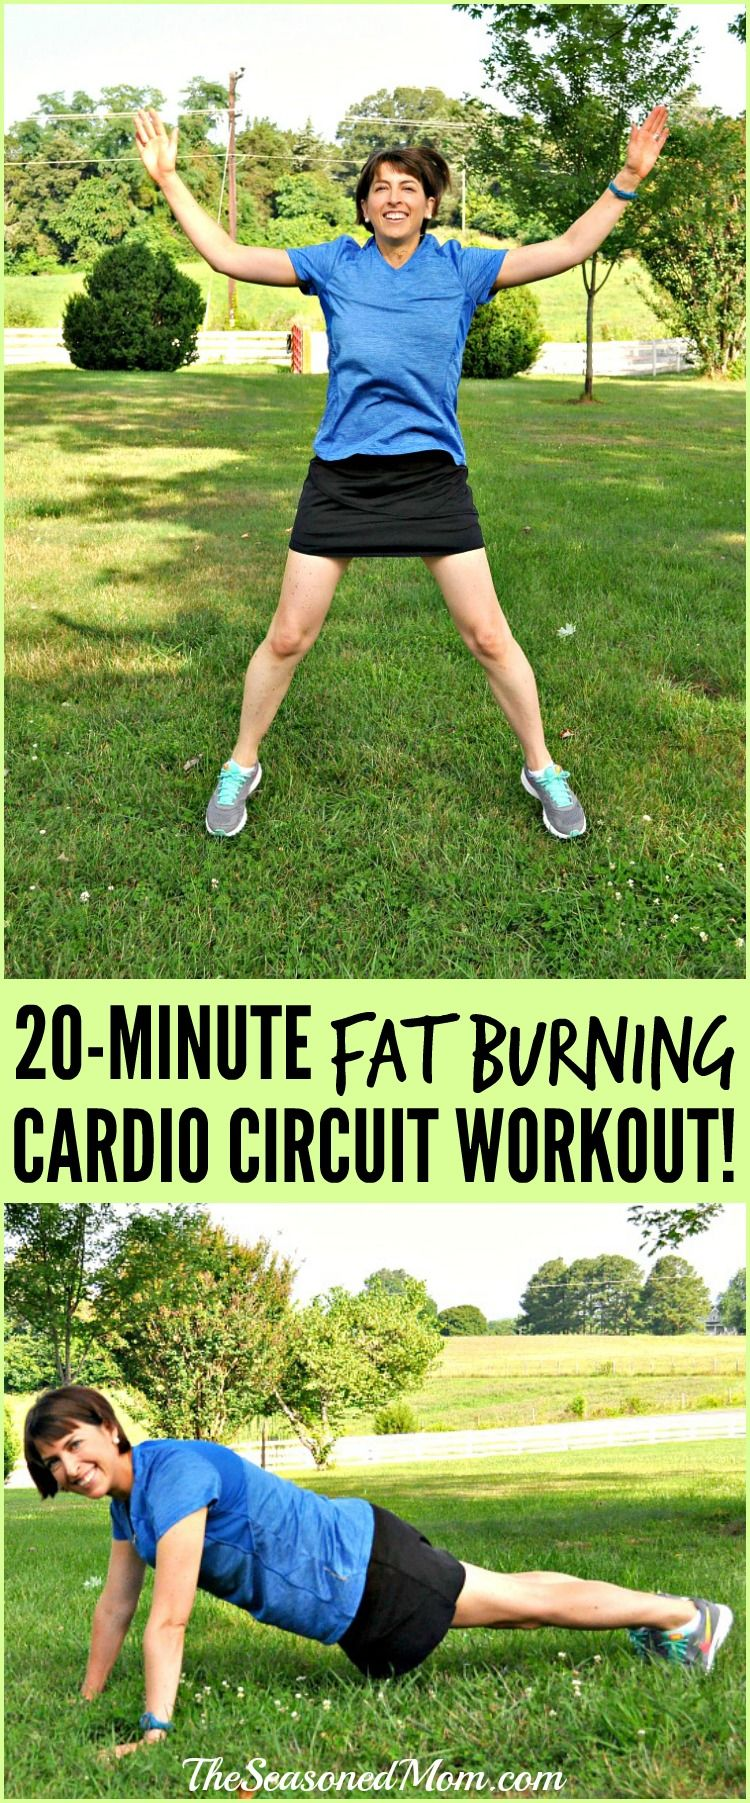 A quick, heartpumping 20MINUTE FAT BURNING CARDIO CIRCUIT WORKOUT that you can do anywhere  no equipment necessary! Kids can join in, too! OutshineSnacks ad @outshinesnacks is part of Circuit workout -